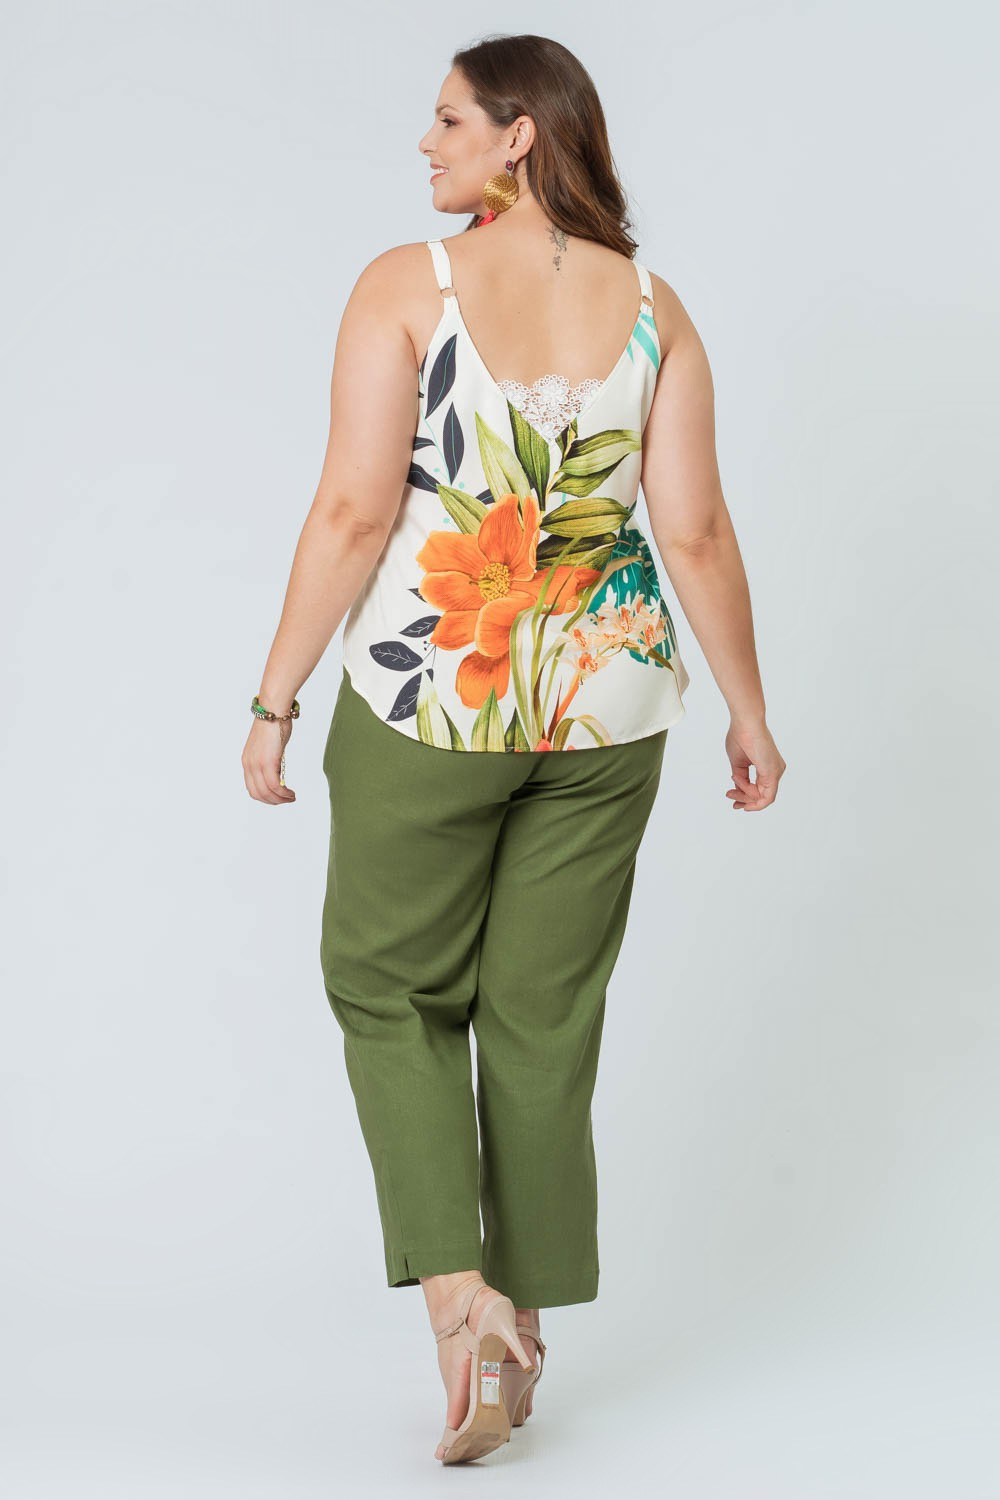 REGATA ESTAMPADA PLUS SIZE FLOR D'ÁGUA OFF WHITE